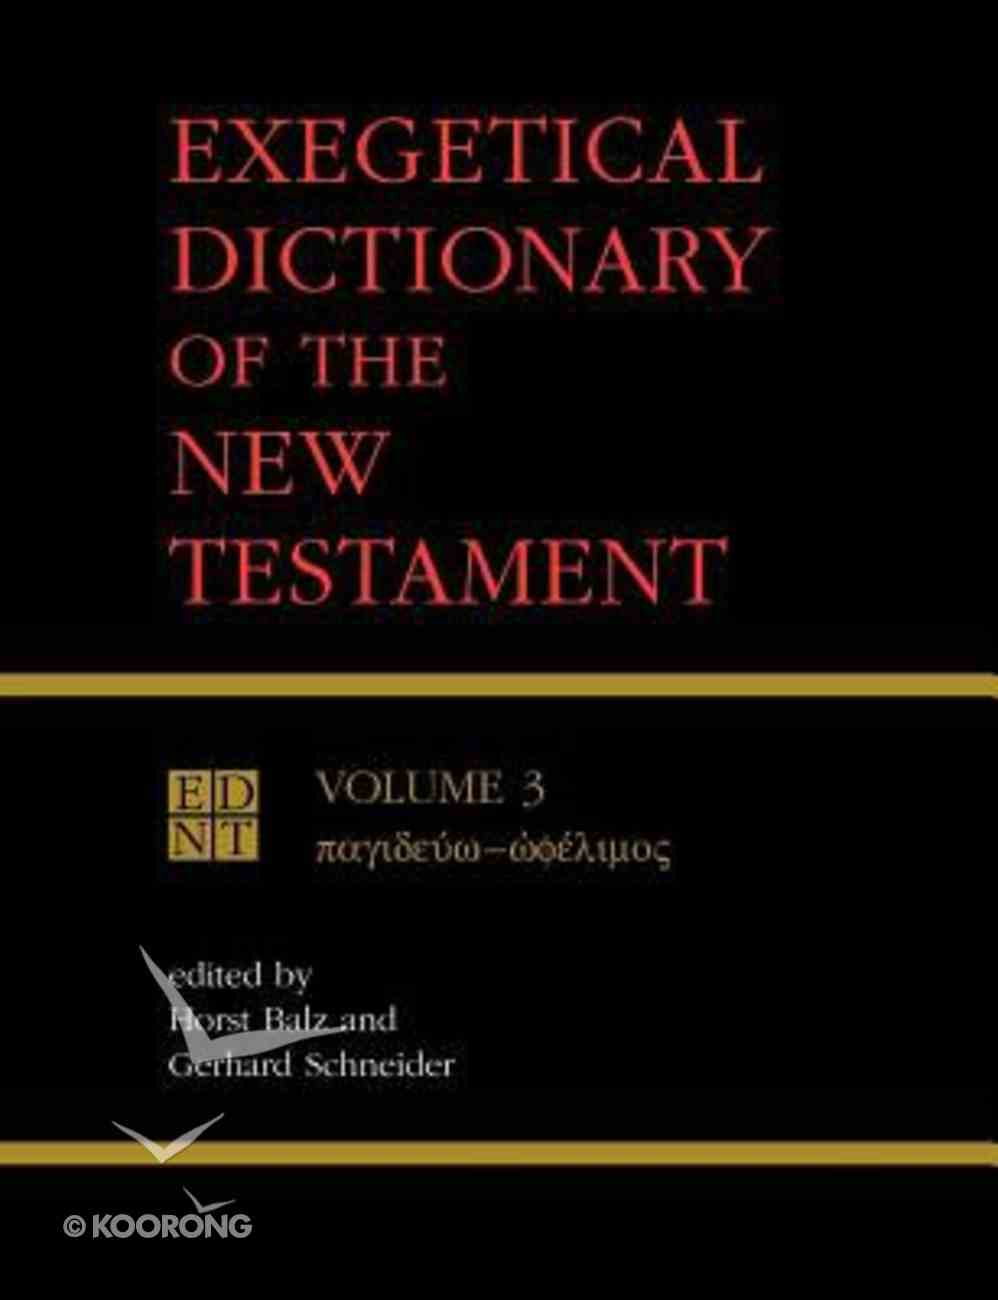 Exegetical Dictionary of the New Testament (Volume 3) (#03 in Exegetical Dictionary Of The New Testament Series) Paperback